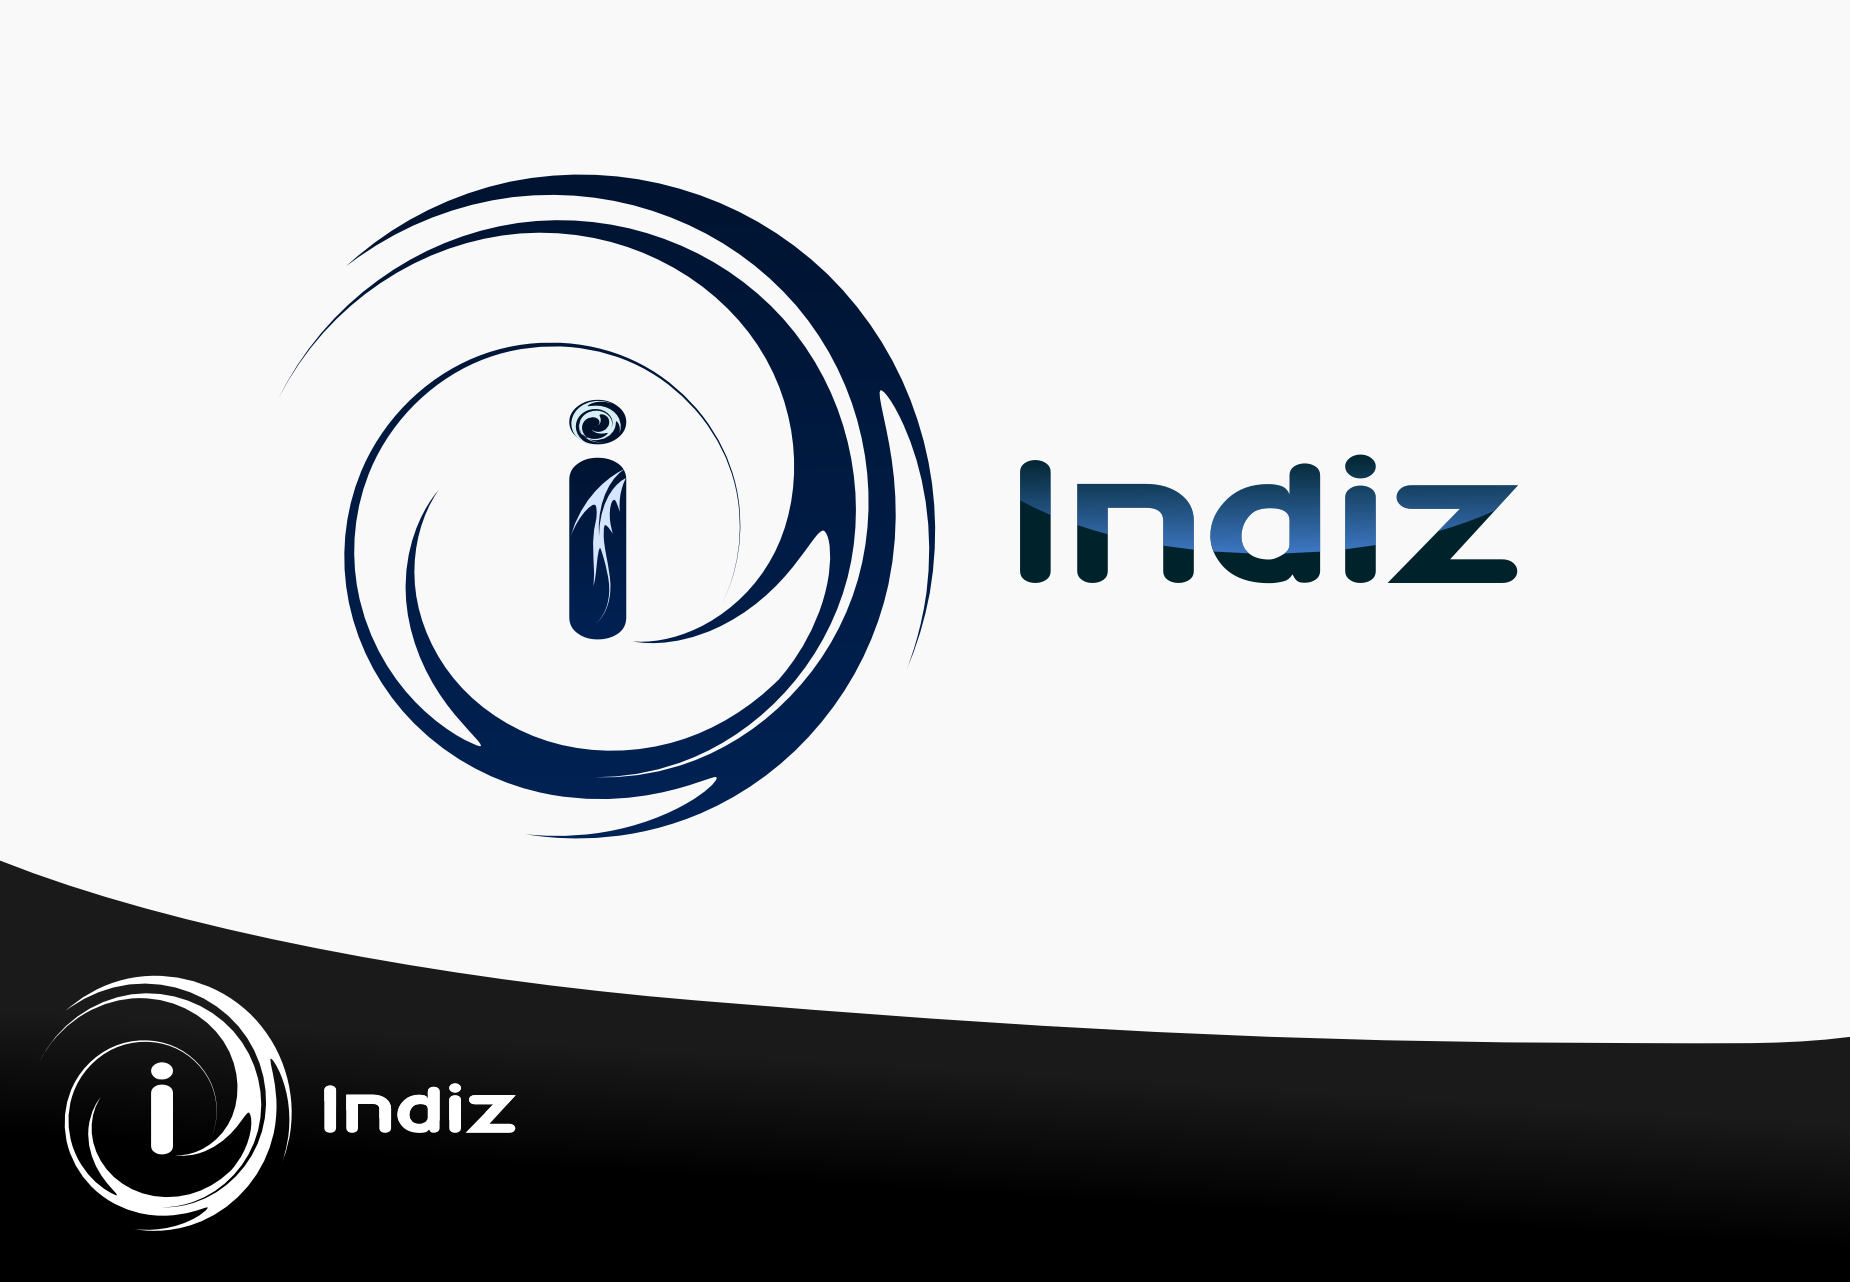 Logo Design by Arindam Khanda - Entry No. 263 in the Logo Design Contest Fun Logo Design for Indiz.